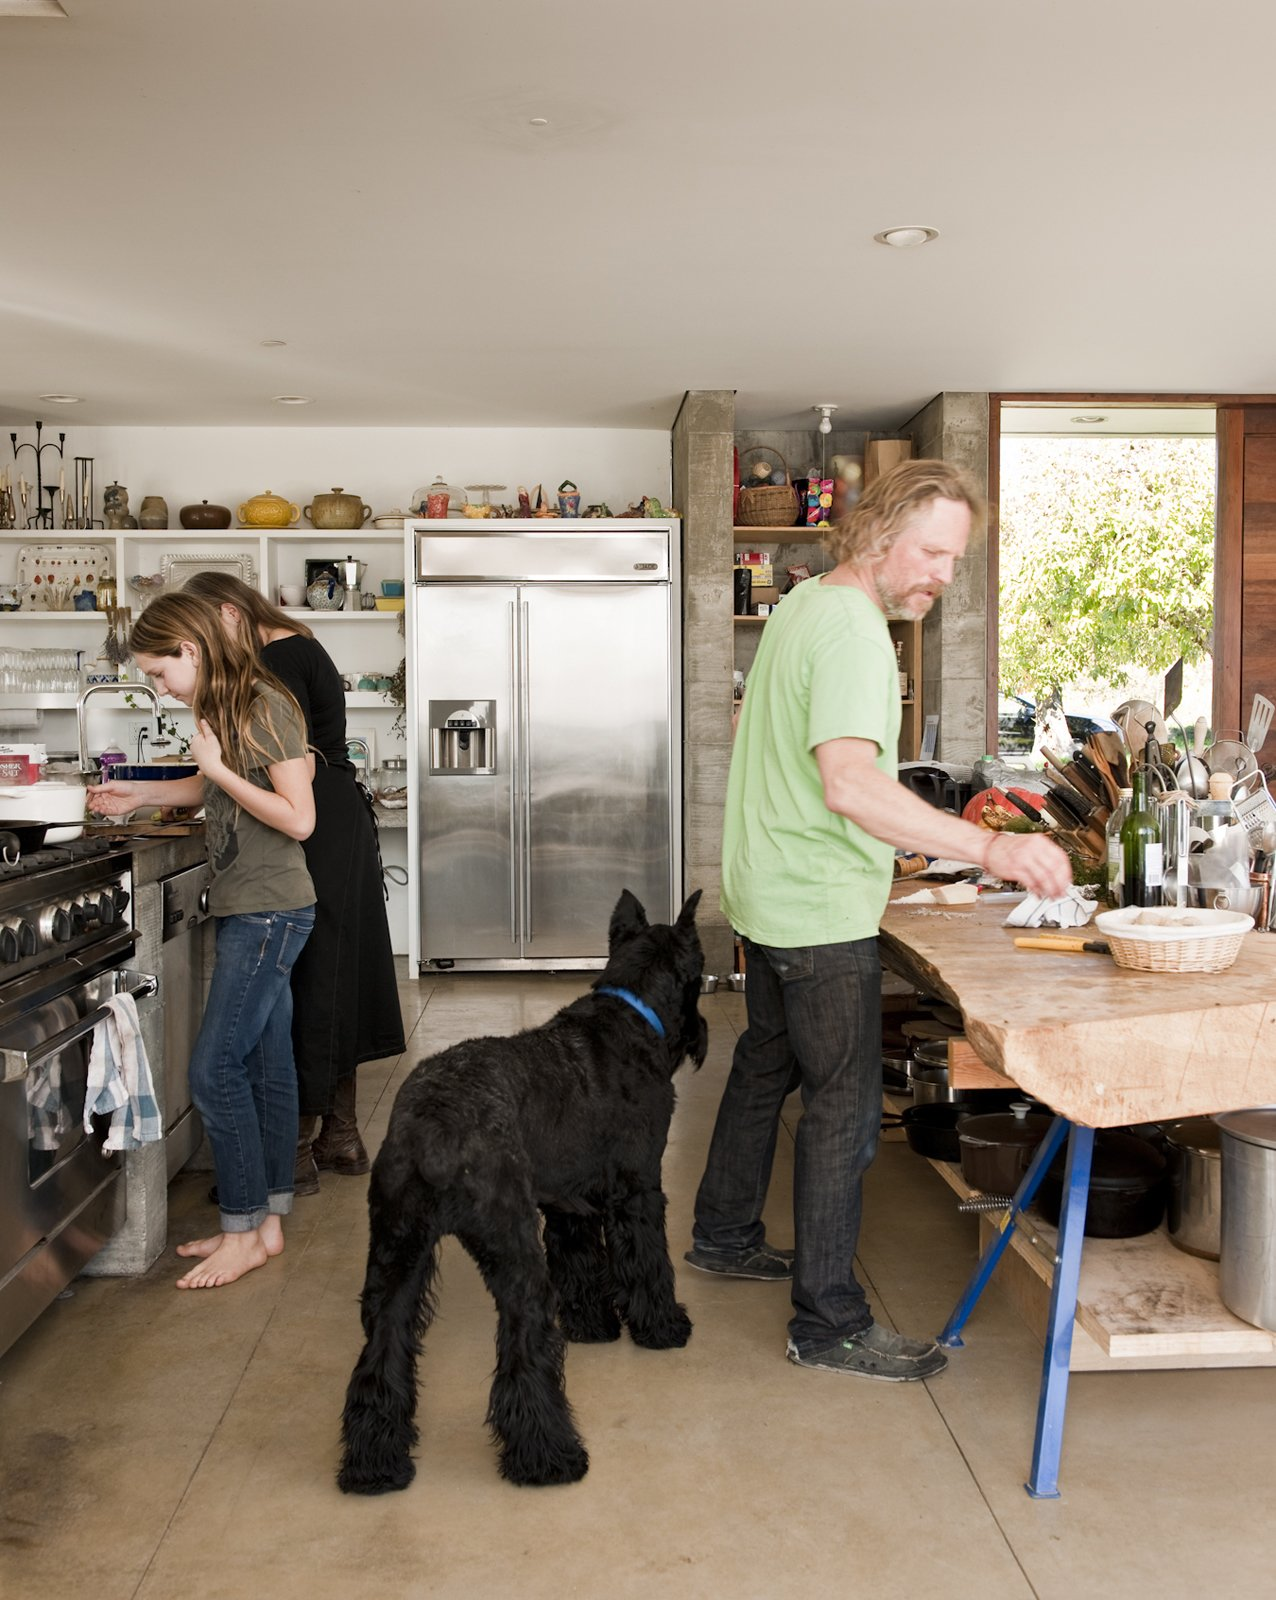 The family needed space not just for cooking, which they do a lot of, but for massive kitchen projects like making wine from their homegrown grapes and oil from their olive trees.  Photo 12 of 18 in A Sonoma Prefab That Celebrates a Family's Passion for Cooking